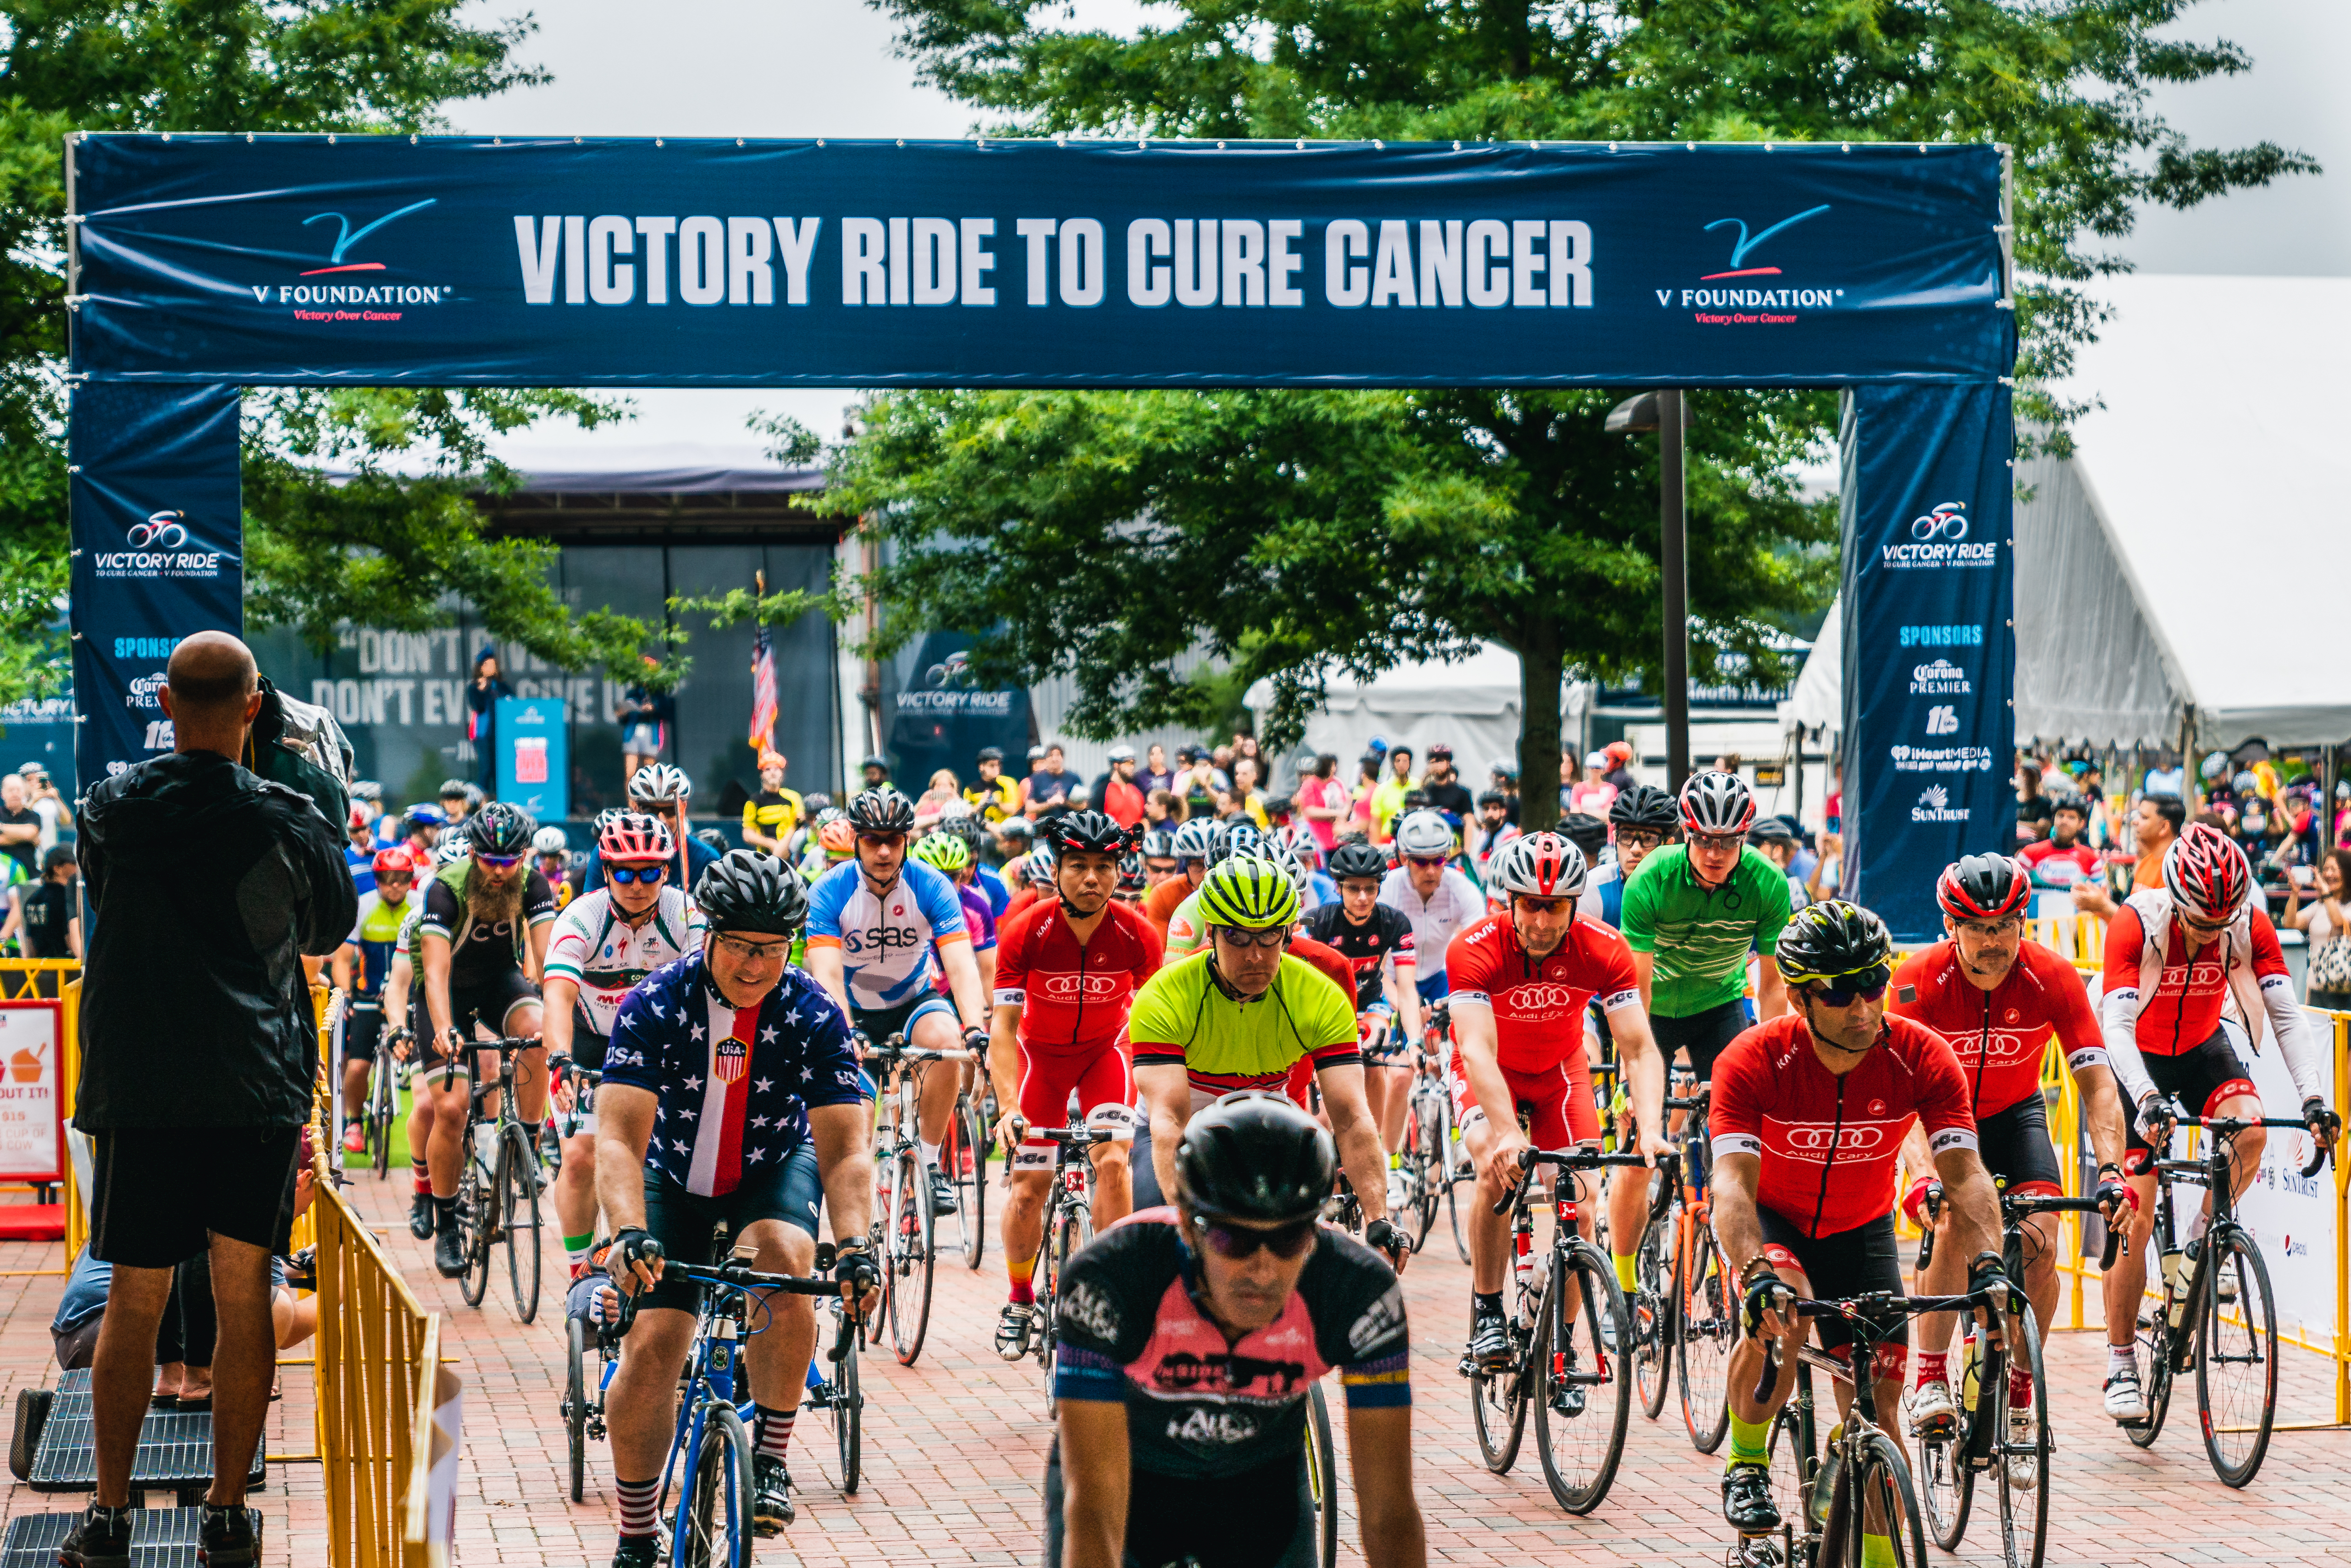 Victory Riders leave the starting gate